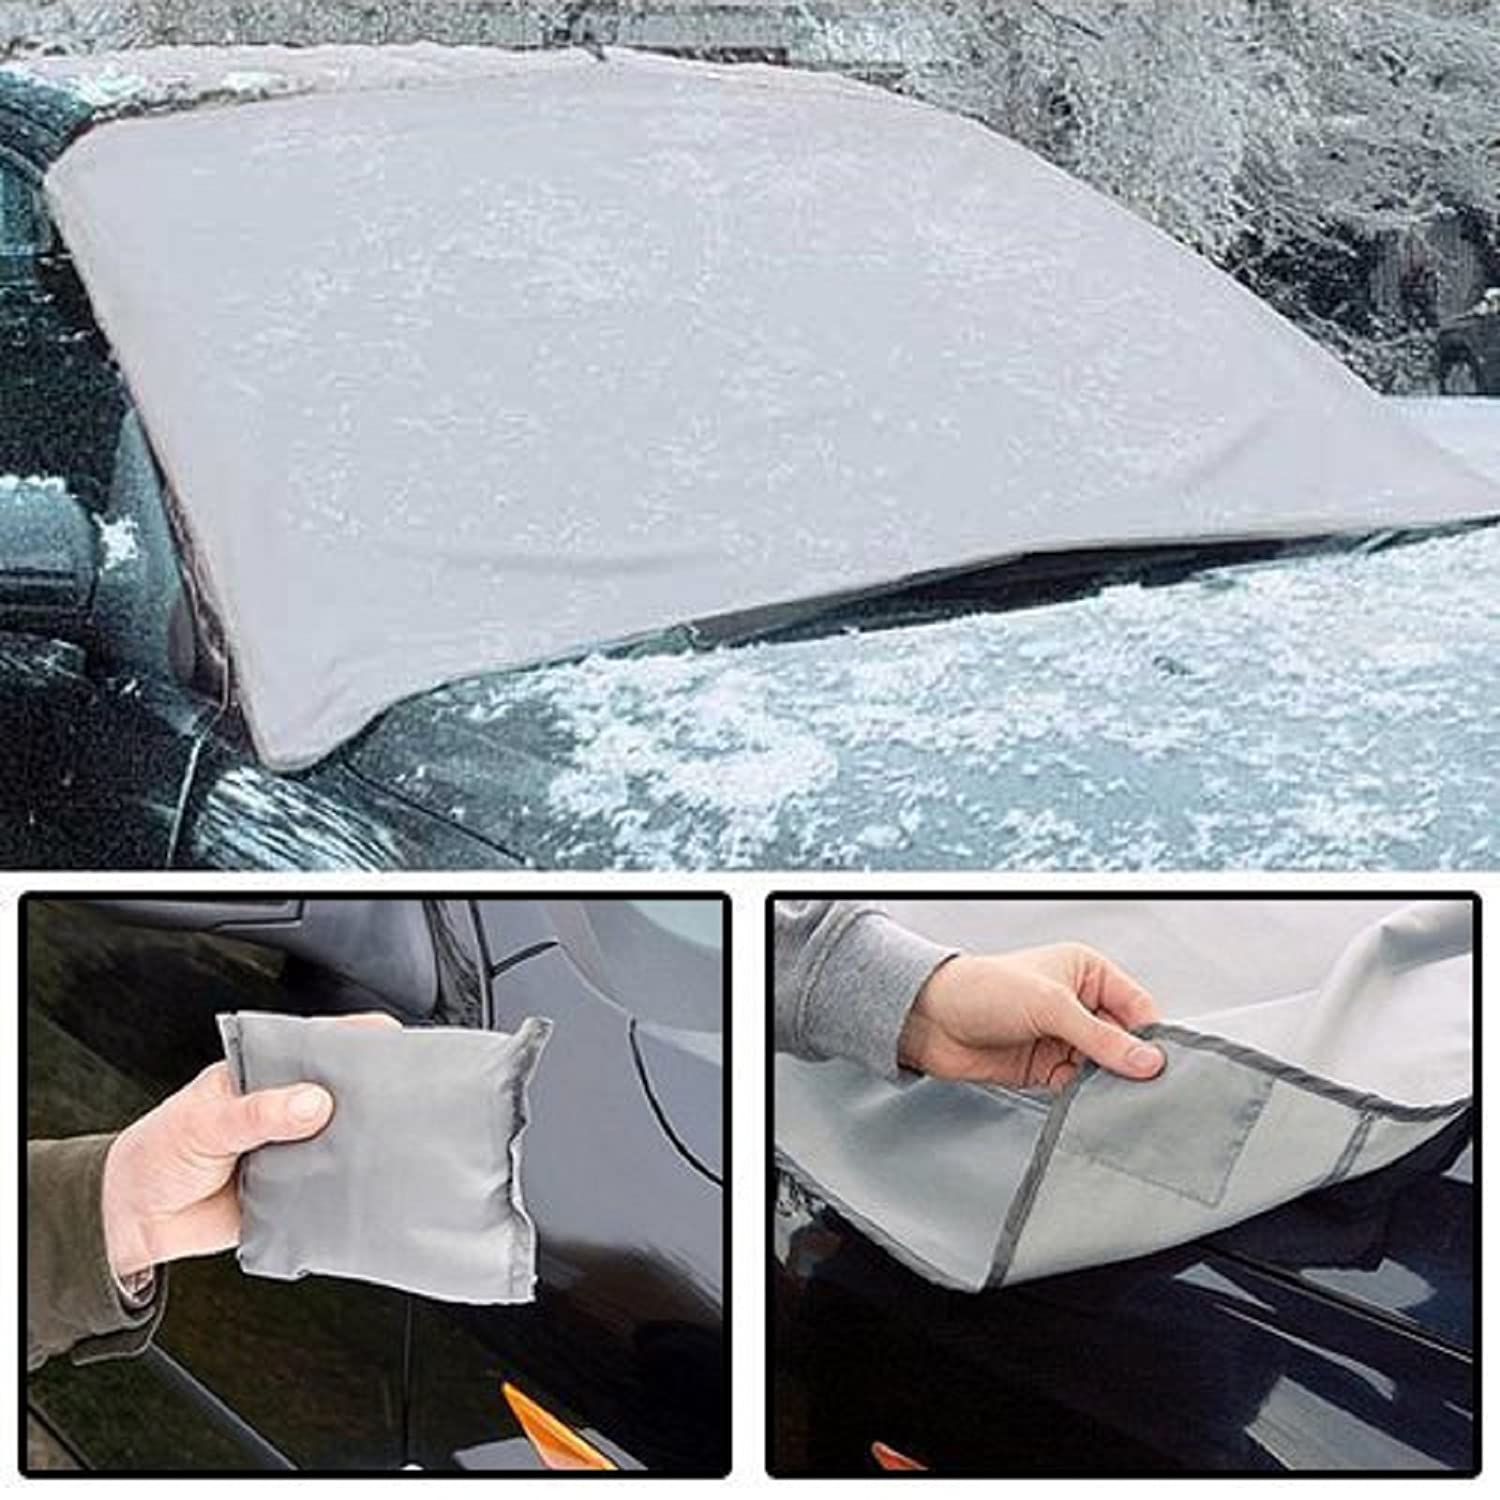 Ram MAGNETIC CAR WINDSCREEN ANTI-FROST ICE FROST SHIELD SNOW COVER DUST PROTECTOR WITH ICE SCRAPPER dg